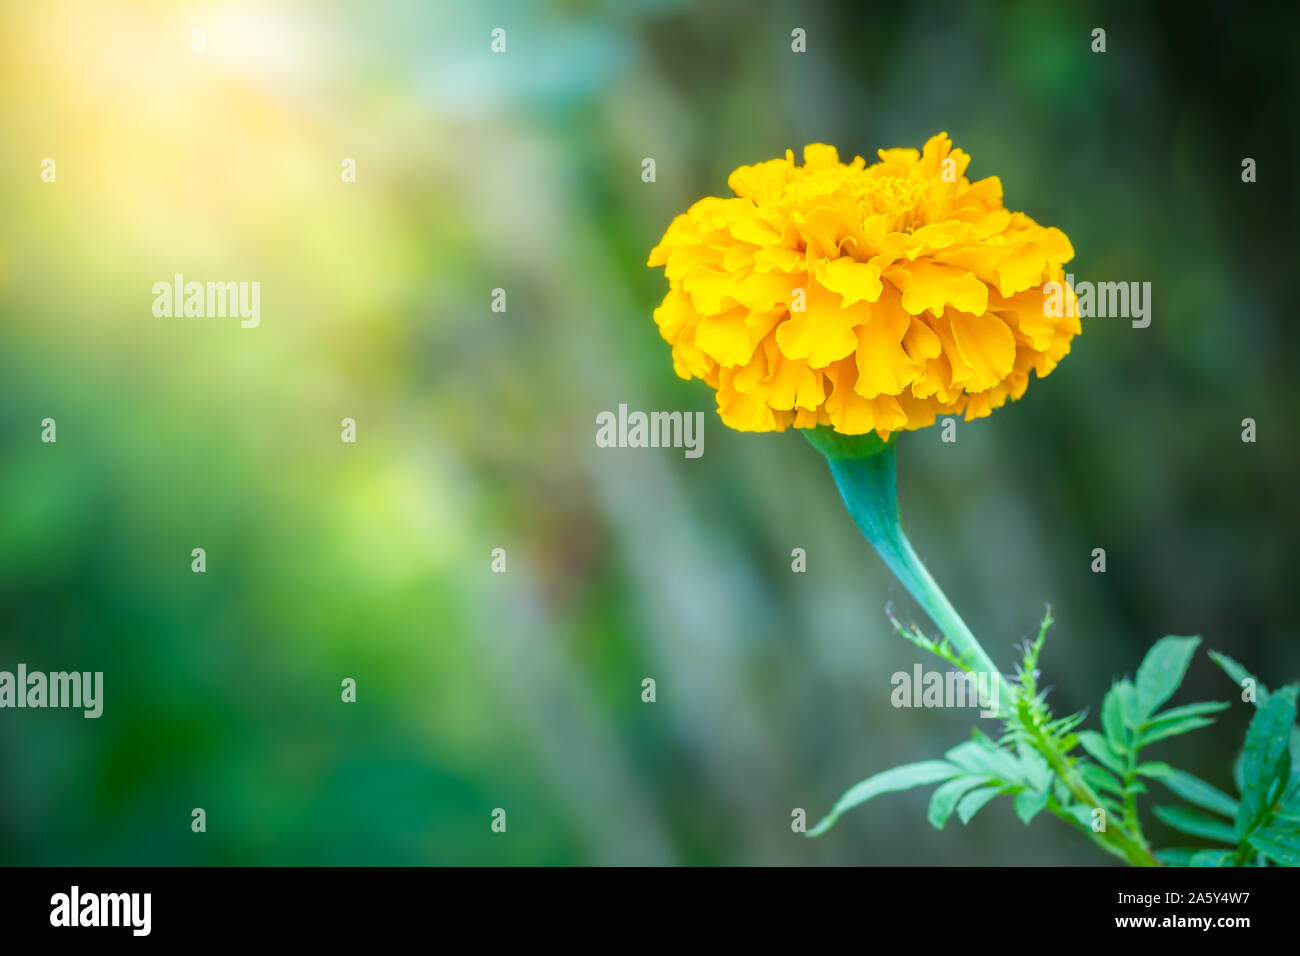 marigold flower in green natural and blur background closeup and copy space 2A5Y4W7